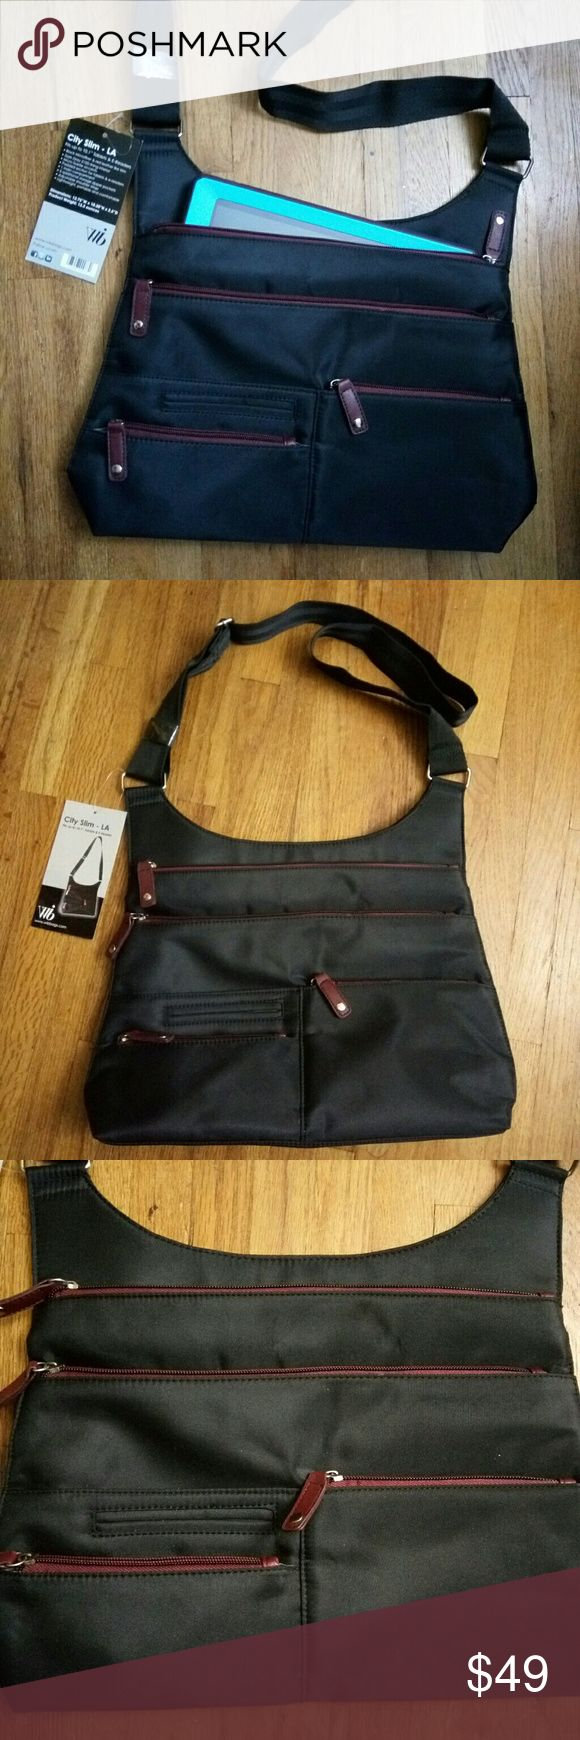 """LA City Slim Tablet Laptop Bag Black BRAND NEW WITH TAGS! (Tablet not included)  The LA City Slim is designed for the urban professional on the go.The City Slim can be worn across the body or over the shoulder.  It is the perfect accessory for running out to do errands around the city or to grab a quick business lunch.Compatibility: Fits up to a 10"""" Tablet, iPad, iPad2, iPad3, Samsung Galaxy up to 10 All Kindle Products including Kindle Fire.  We ship same day or next. Thank you for shopping…"""